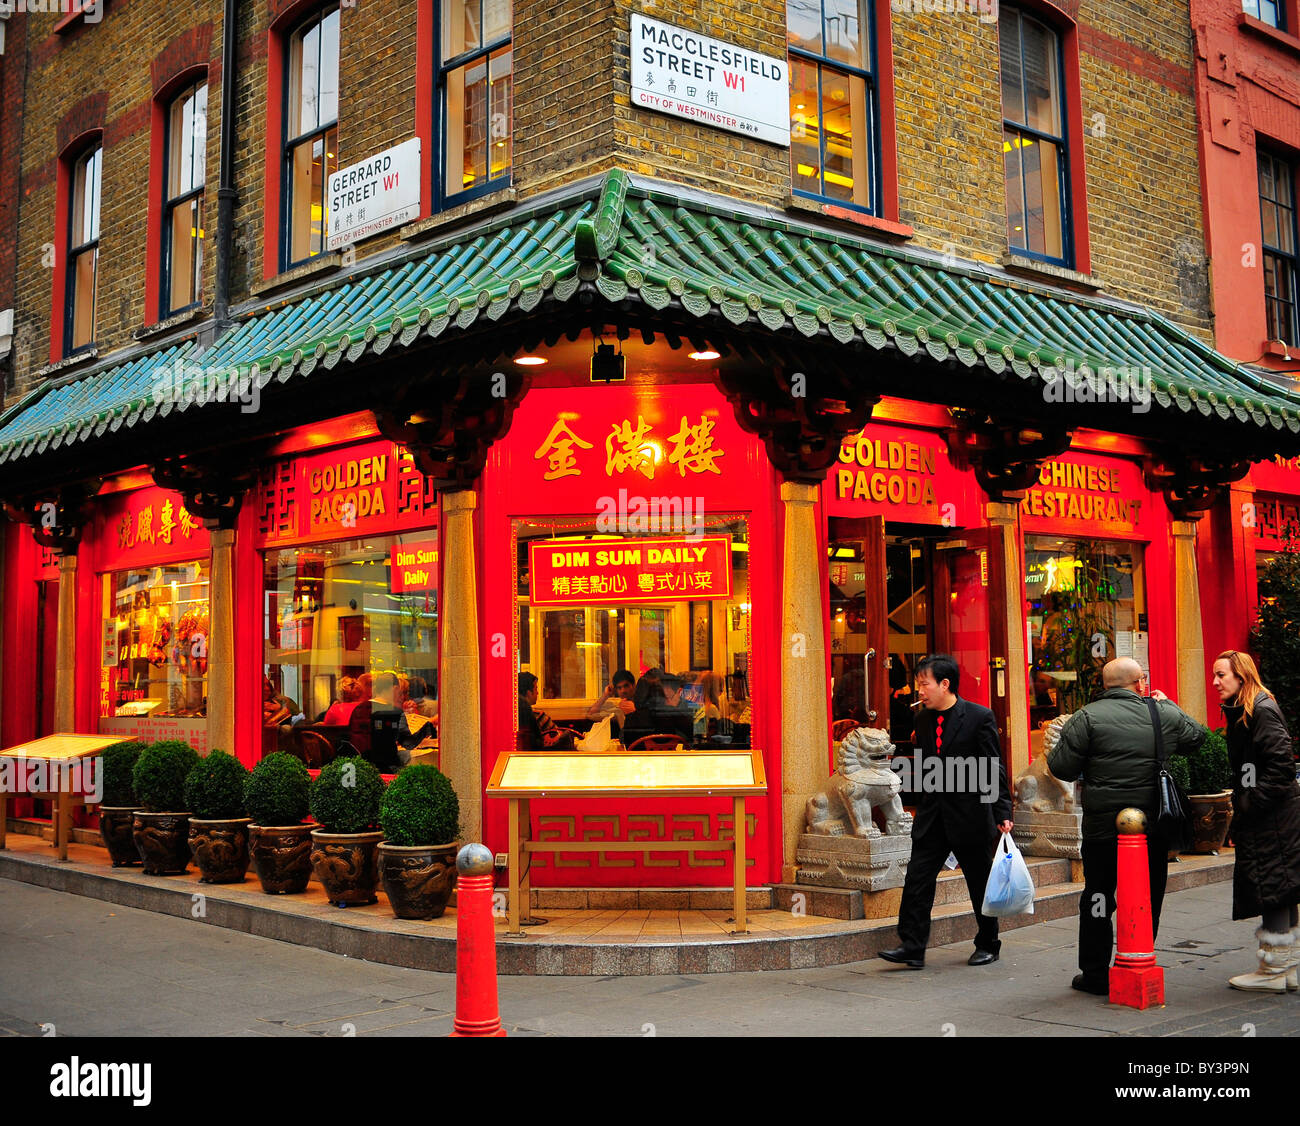 Chinese Restsurant: Golden Pagoda Restaurant In China Town, London Stock Photo